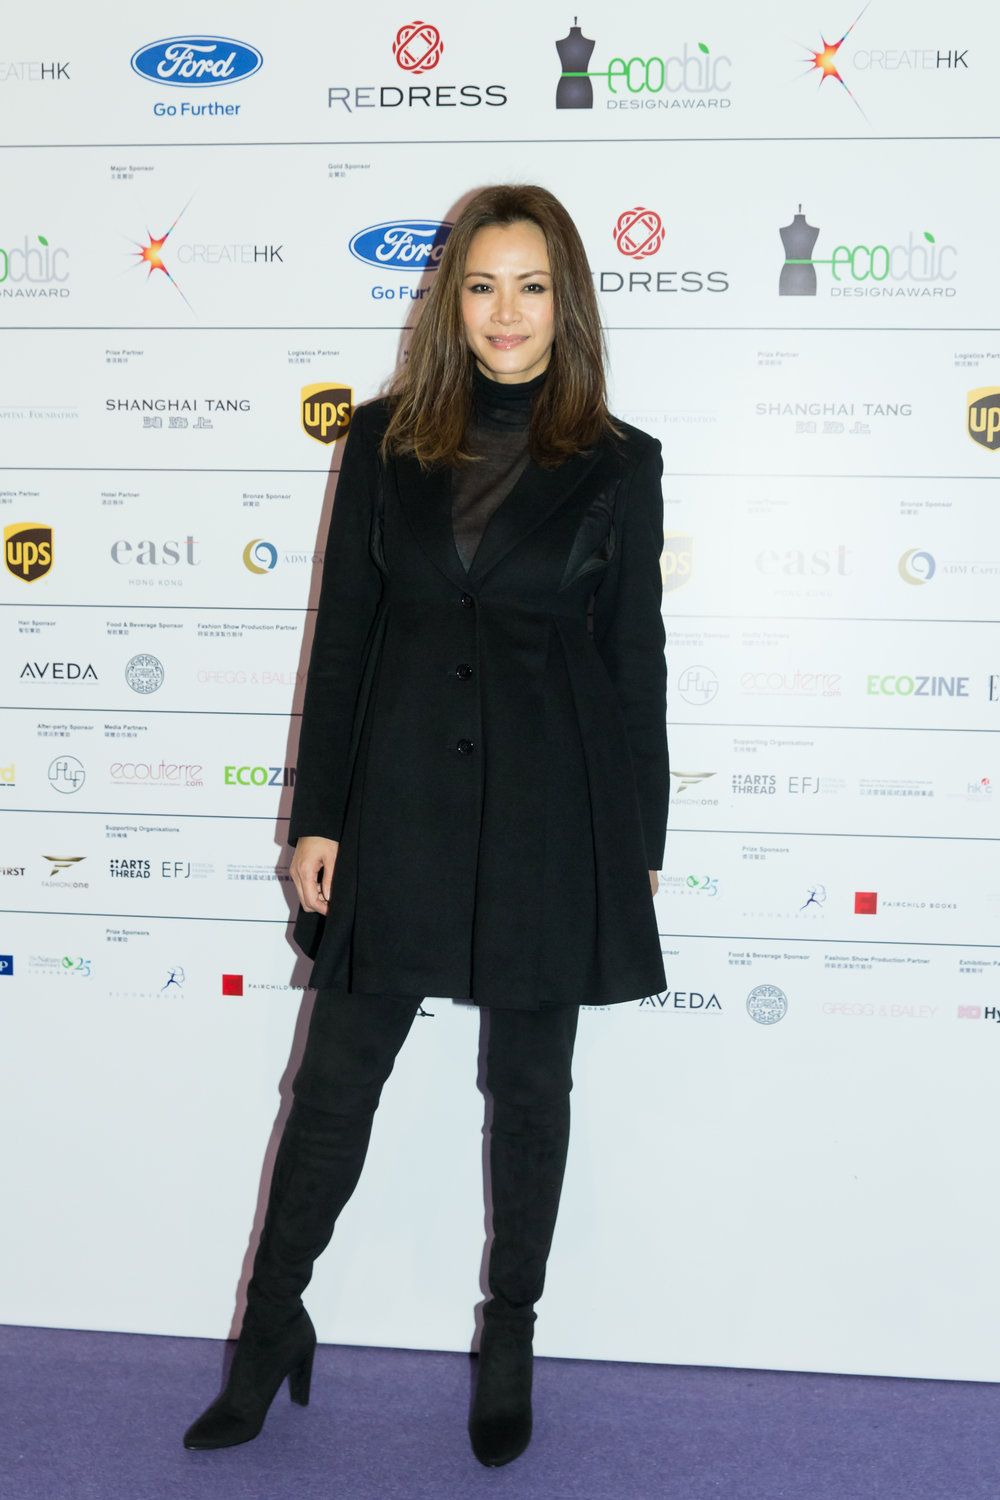 Hong Kong supermodel Janet Ma wears Alex Leau to attend the EcoChic Design Award 2015/16 Grand Final Show